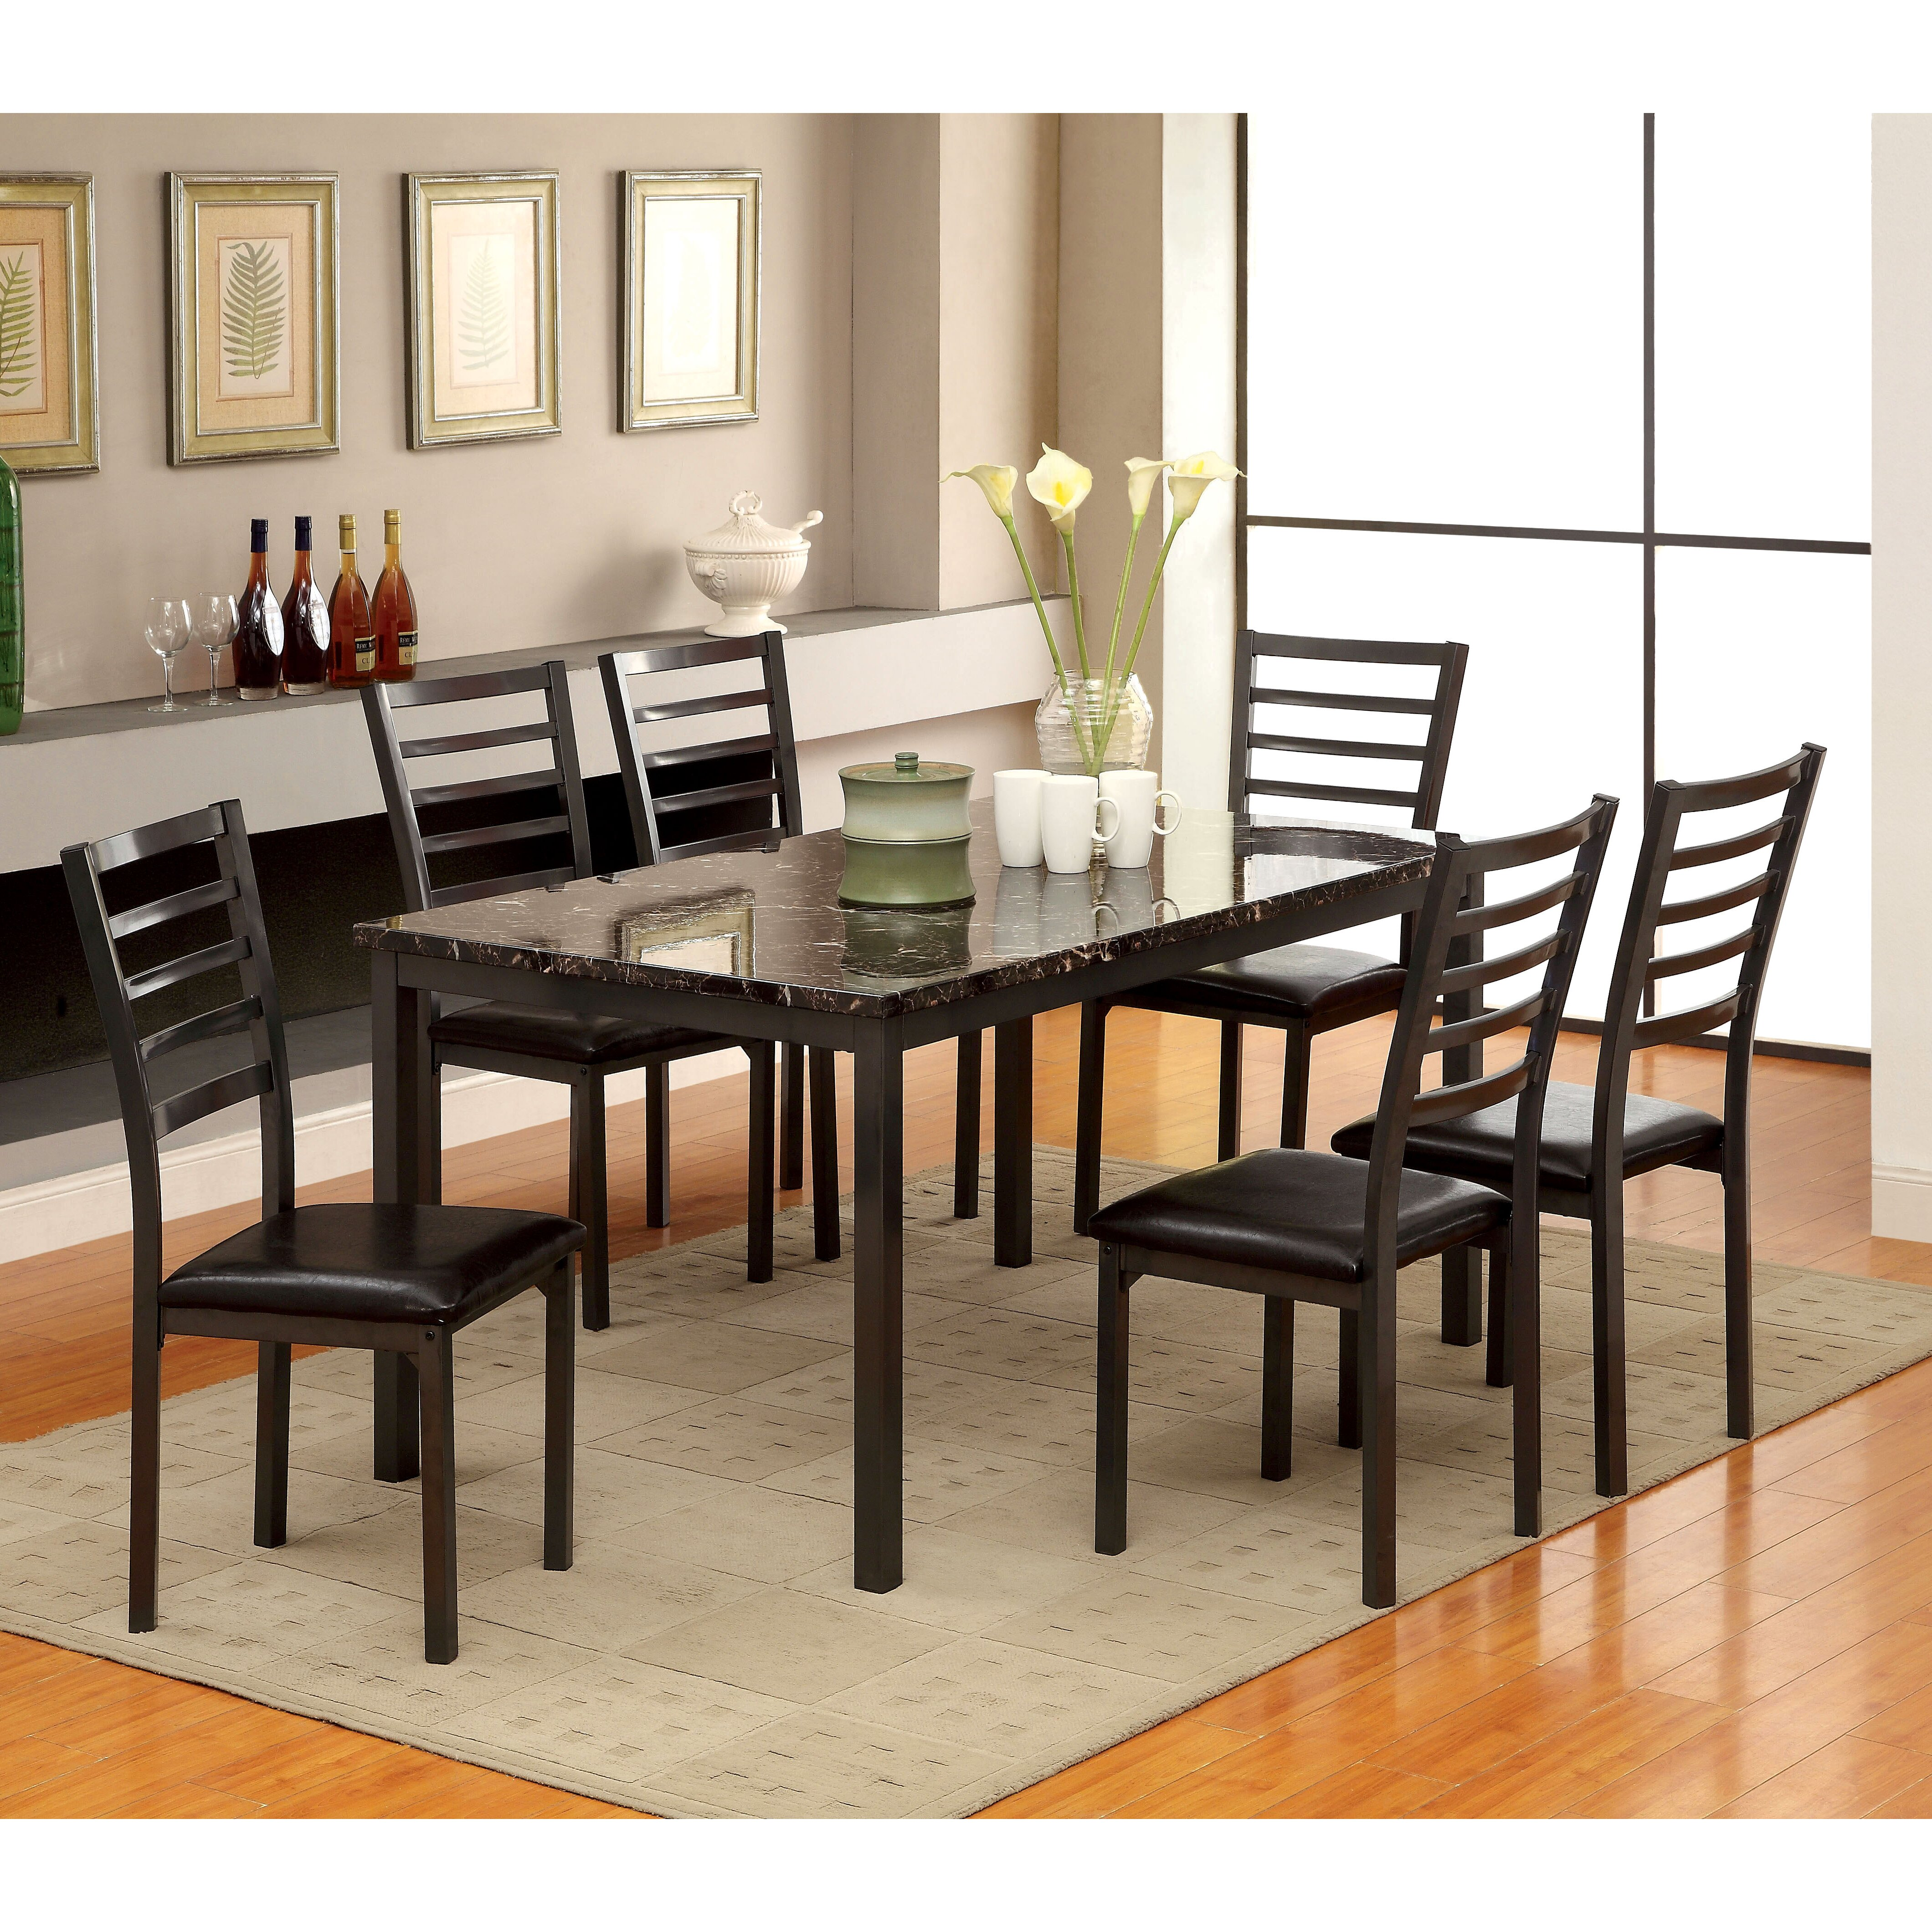 Hokku designs cramer 7 piece dining set reviews for Cramer furniture